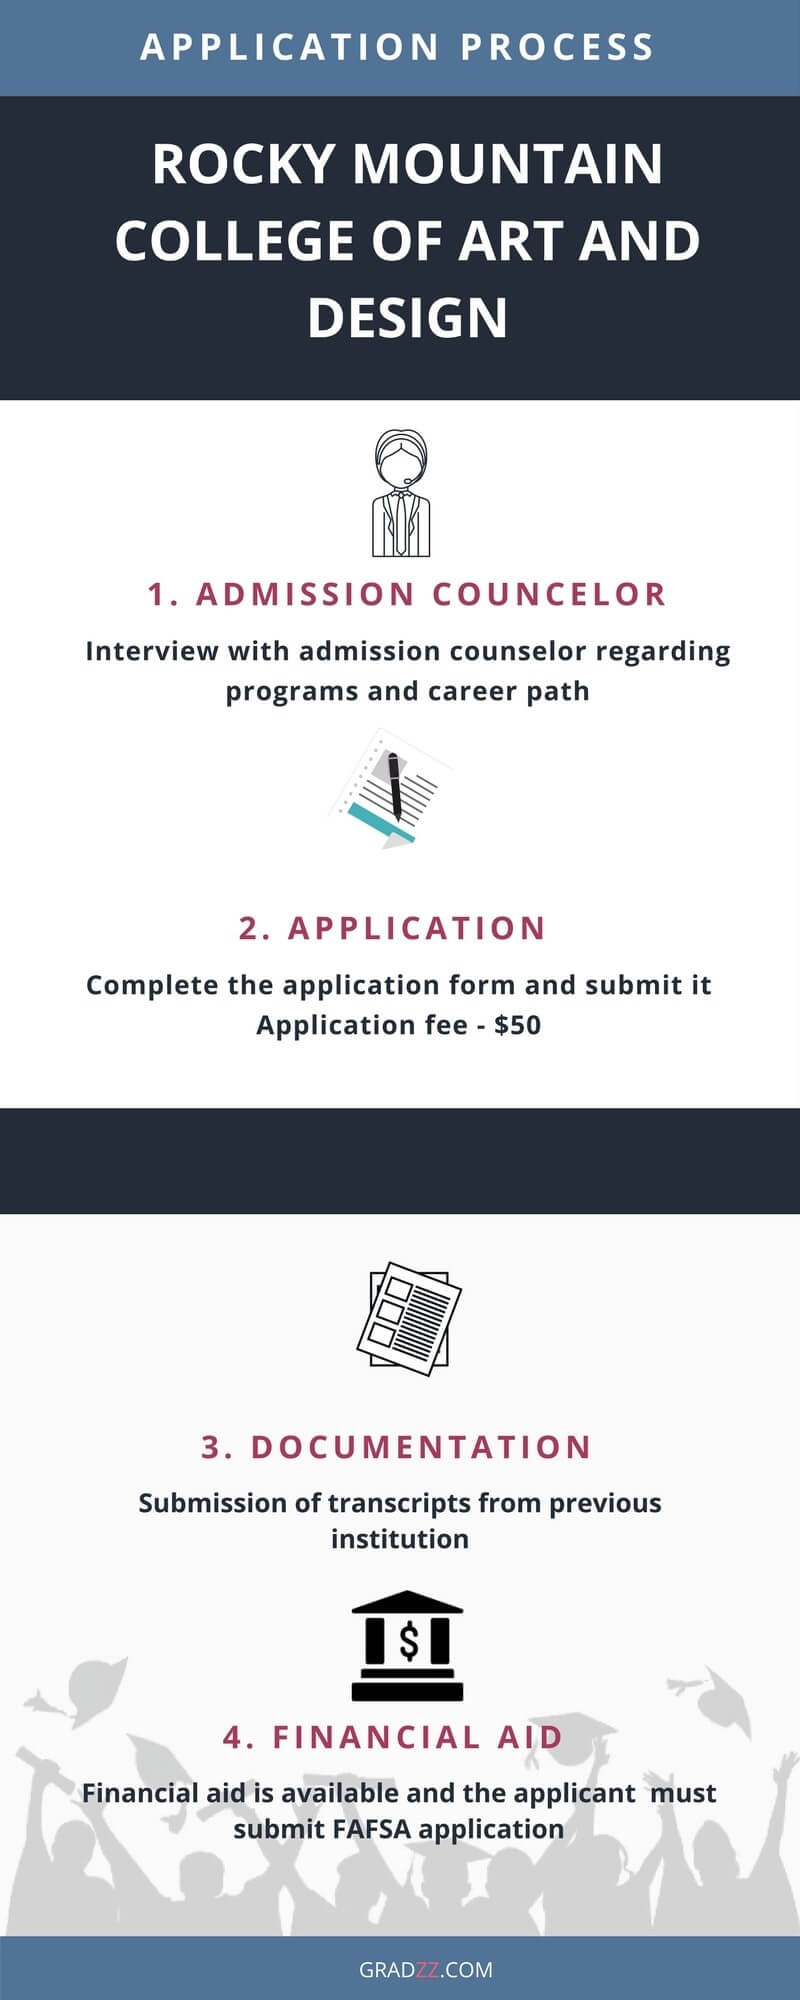 rocky mountain school of art and design application